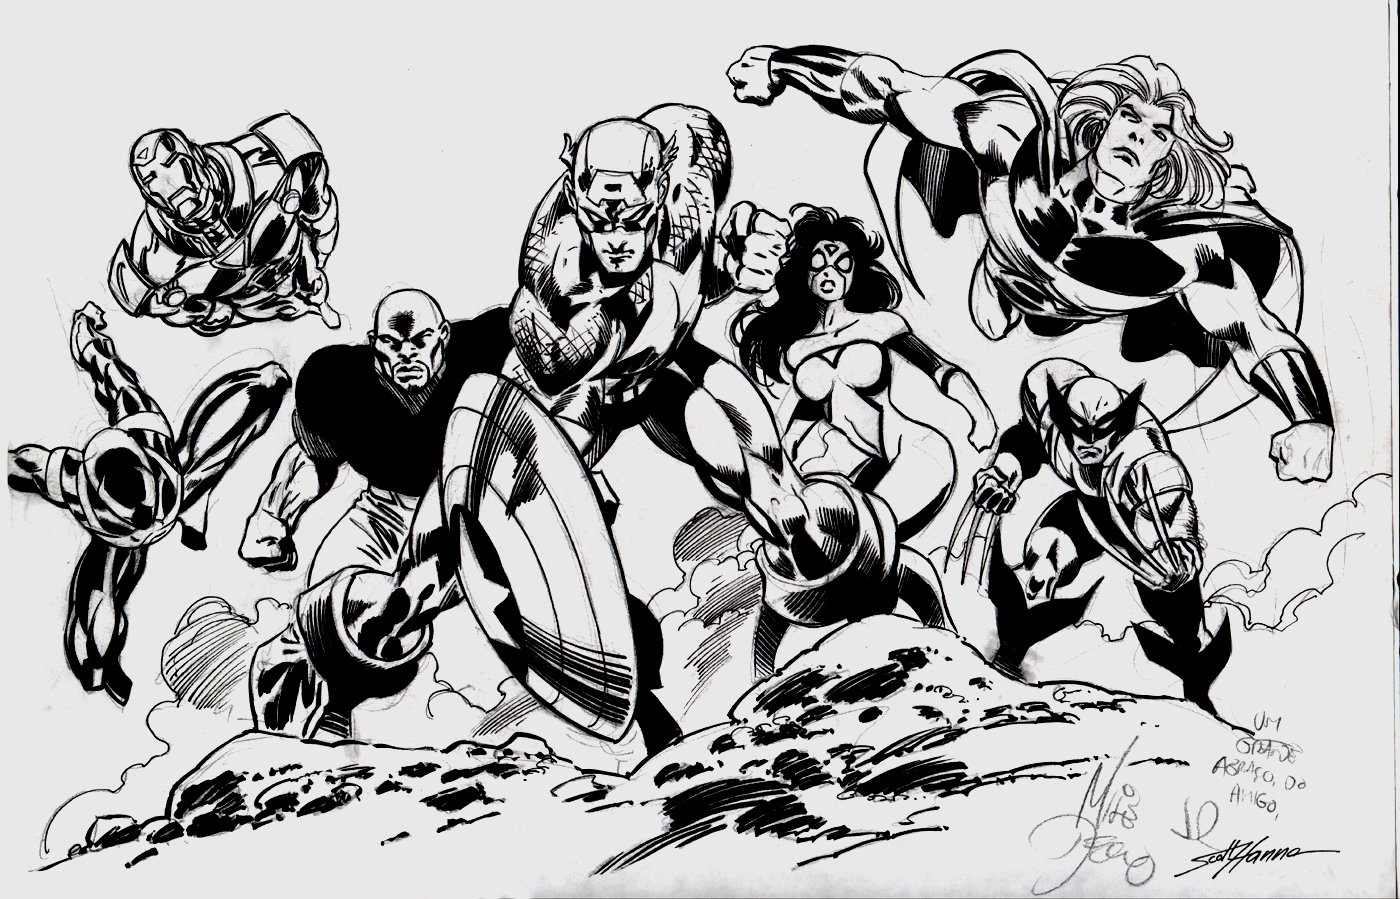 Spider-Man, Iron Man, Cap, Spider-Woman, Thor, Wolverine, Cage Large Pinup!